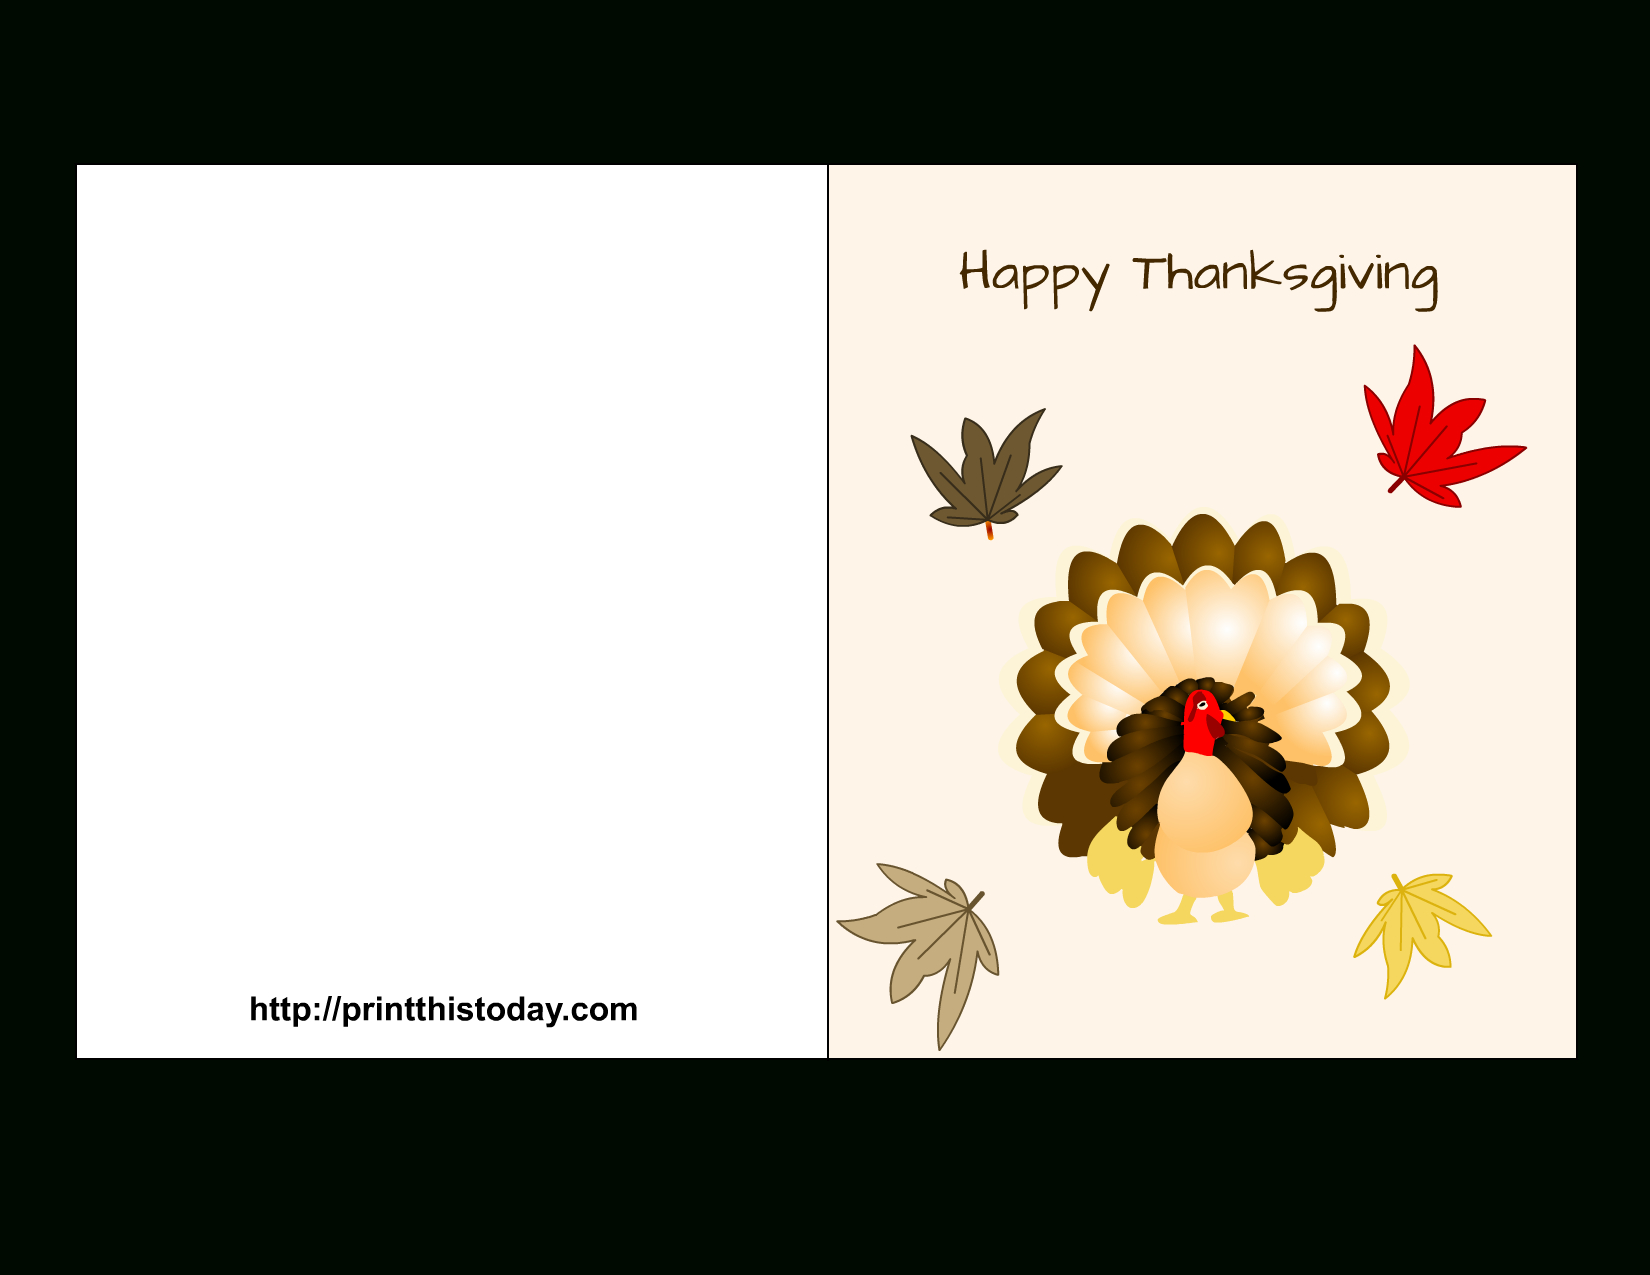 Free Printable Thanksgiving Cards - Free Printable Thanksgiving Cards